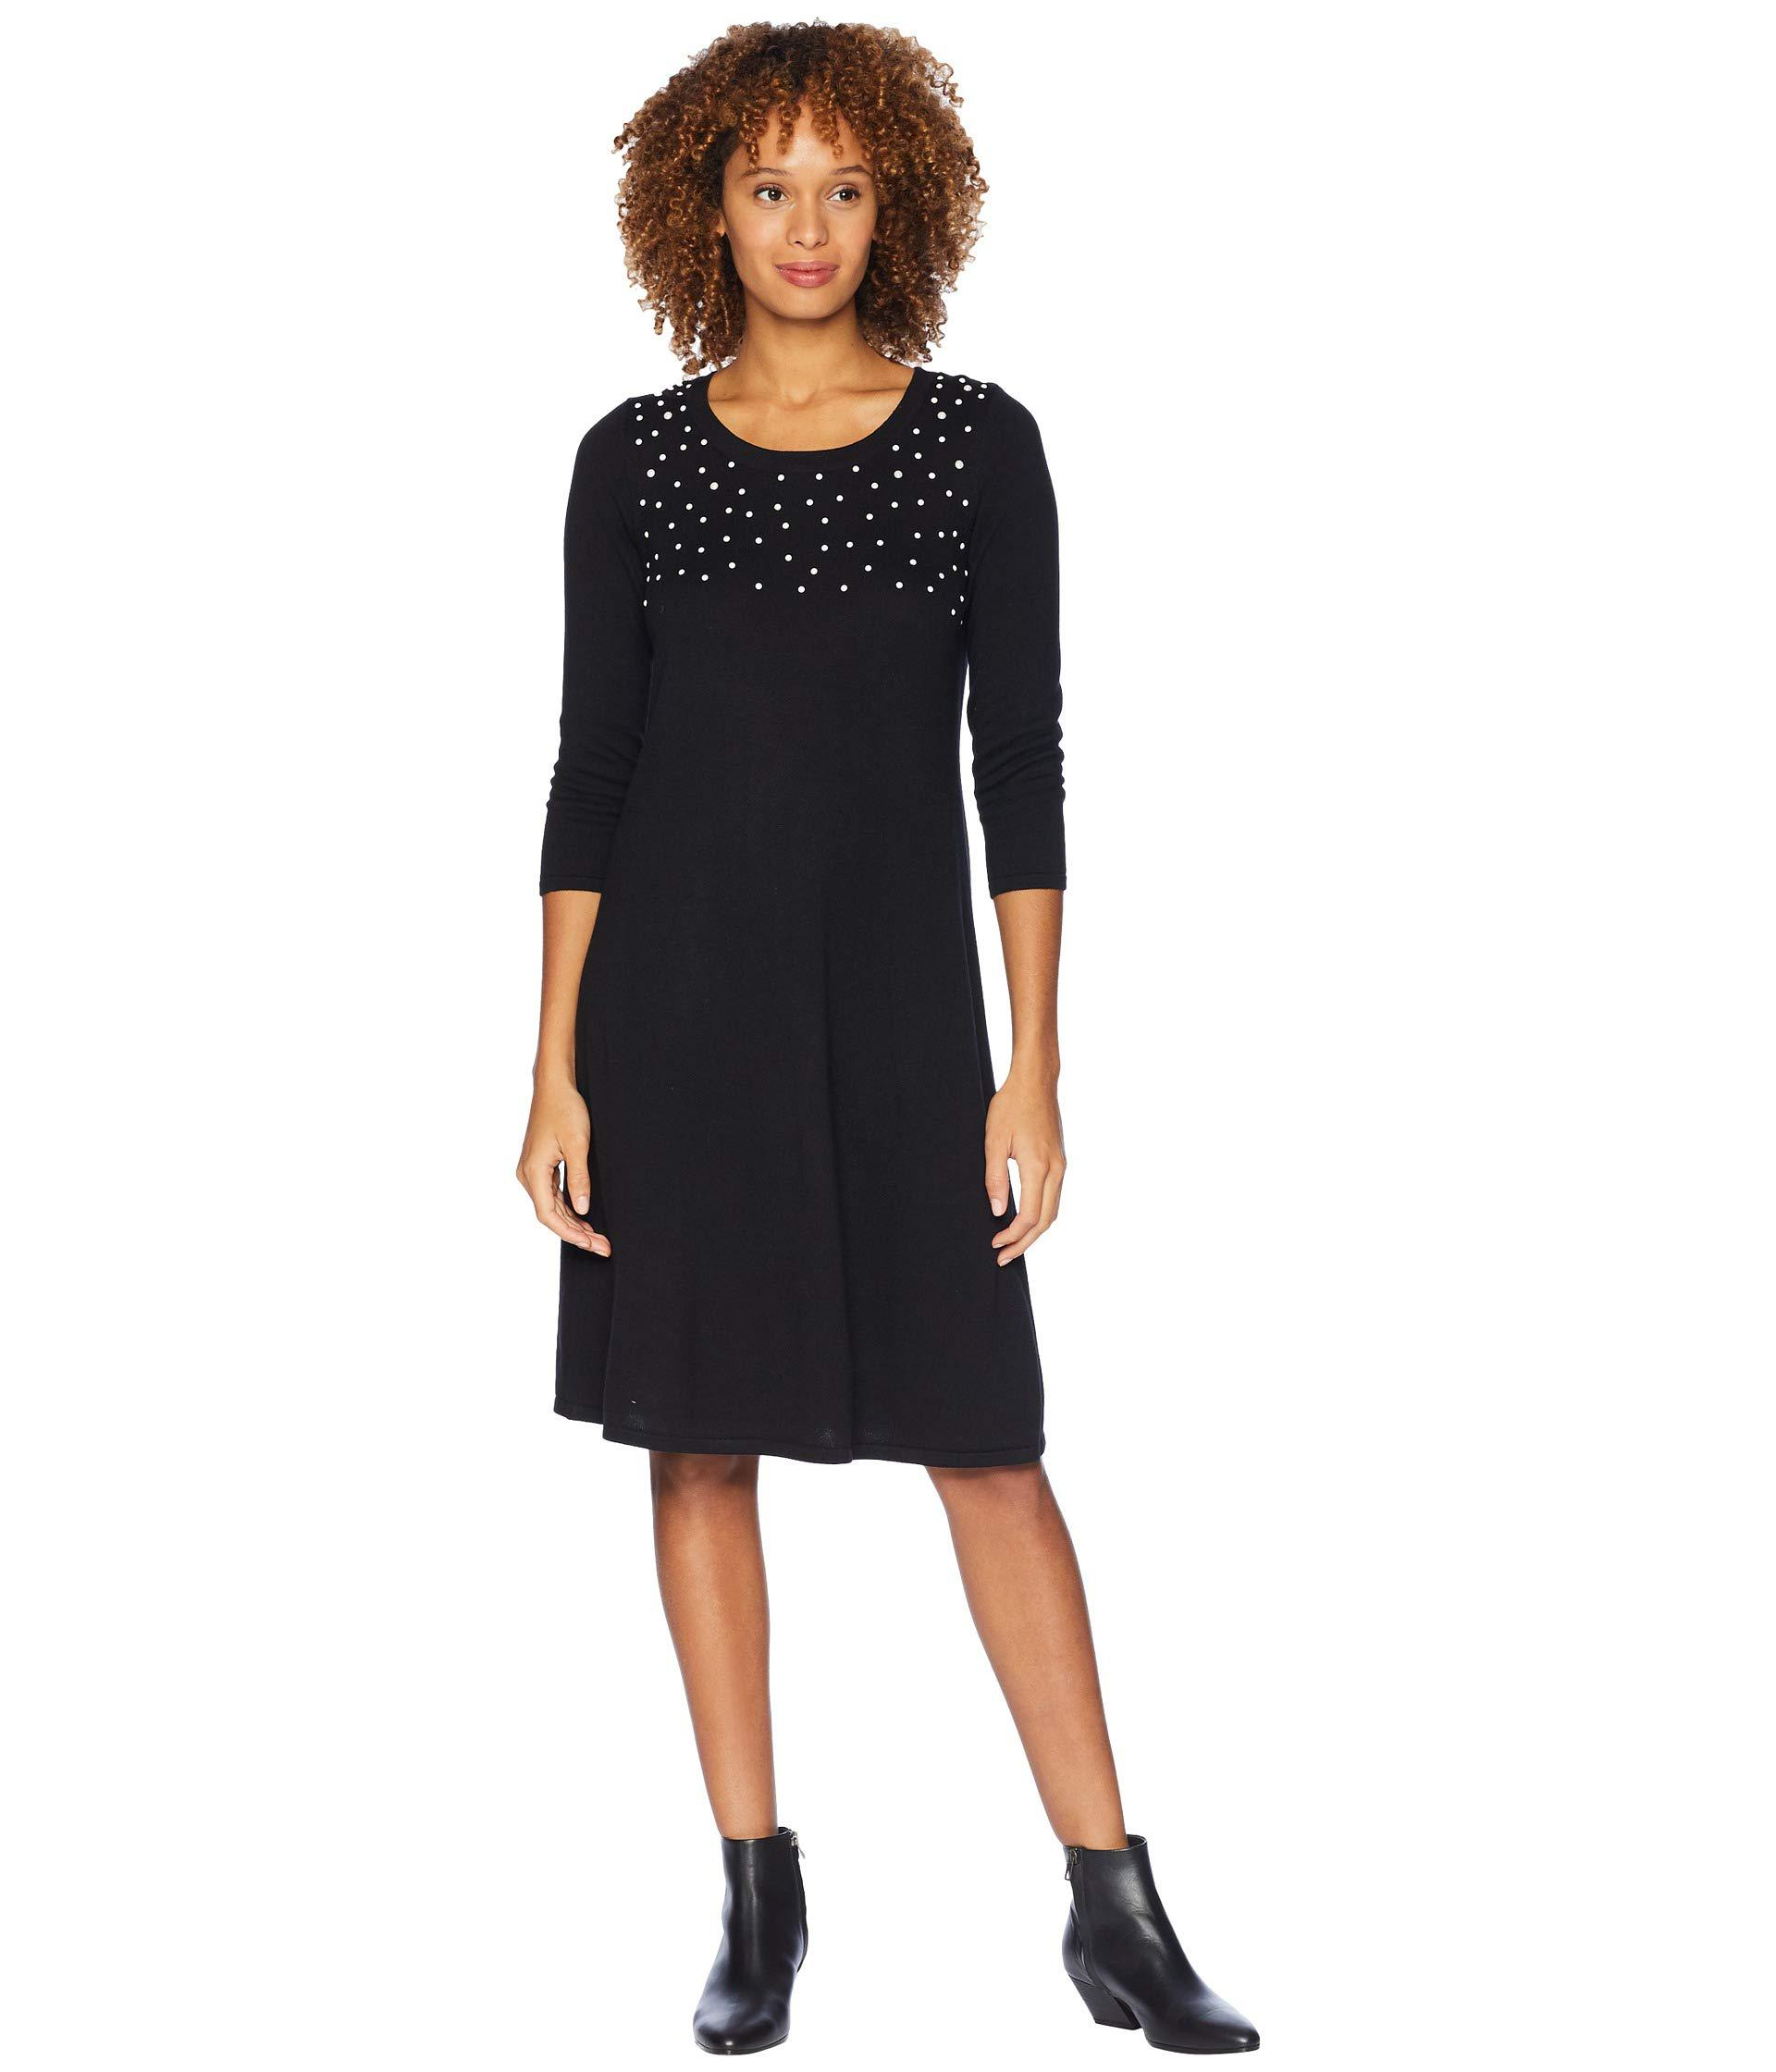 e16c1e0e3d8 Nine West. Women s Black 3 4 Sleeve Shift Sweater Dress W  Pearl Details